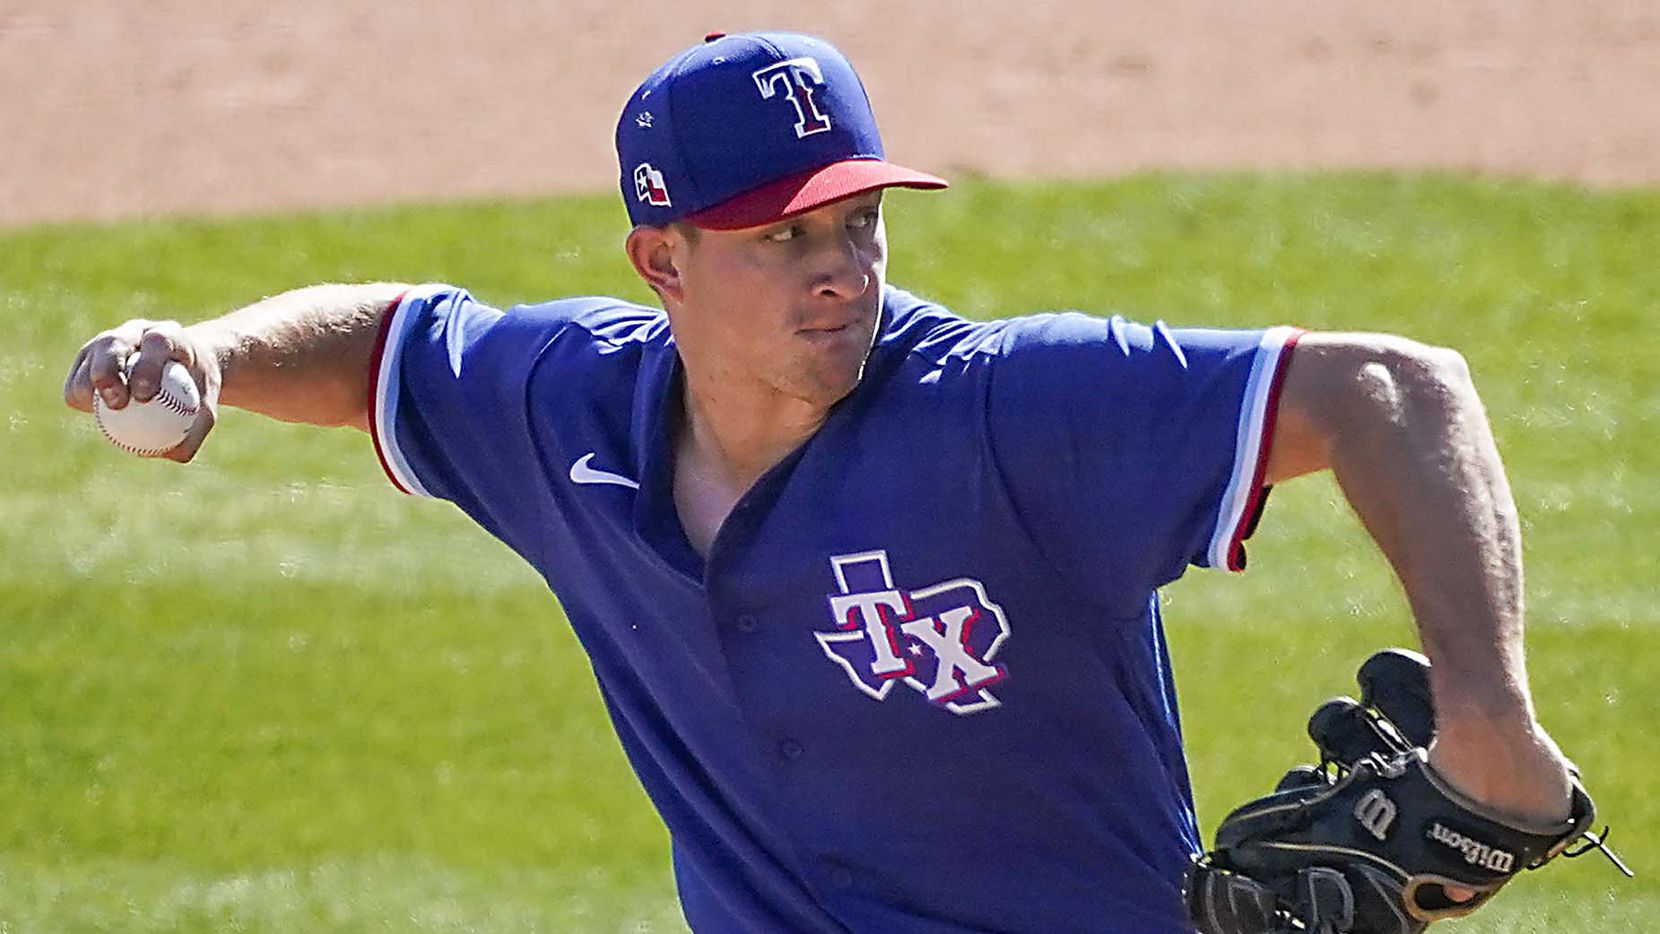 Rangers pitcher Brett de Geus delivers during the sixth inning of a spring training game against the White Sox at Camelback Ranch on Tuesday, March 2, 2021, in Phoenix.